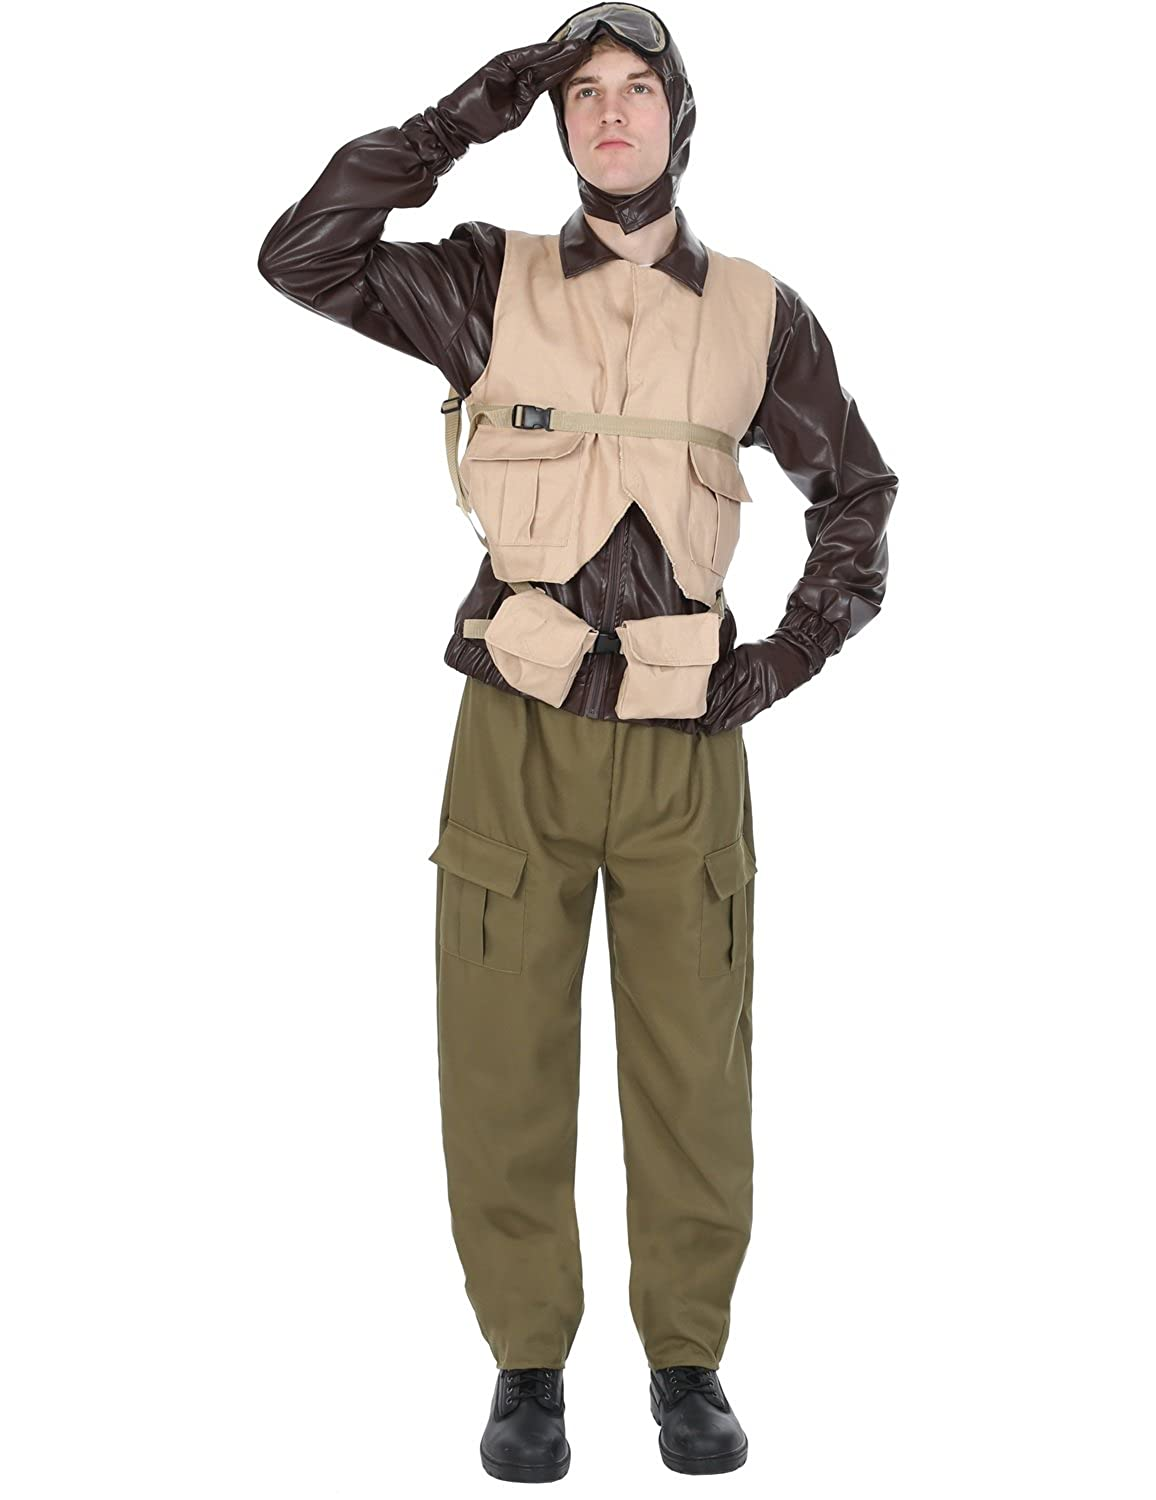 1940s Dresses and Clothing UK | 40s Shoes UK Orion Costumes Mens World War II WW2 Fighter Pilot 1940s Aviator Fancy Dress Costume �26.11 AT vintagedancer.com